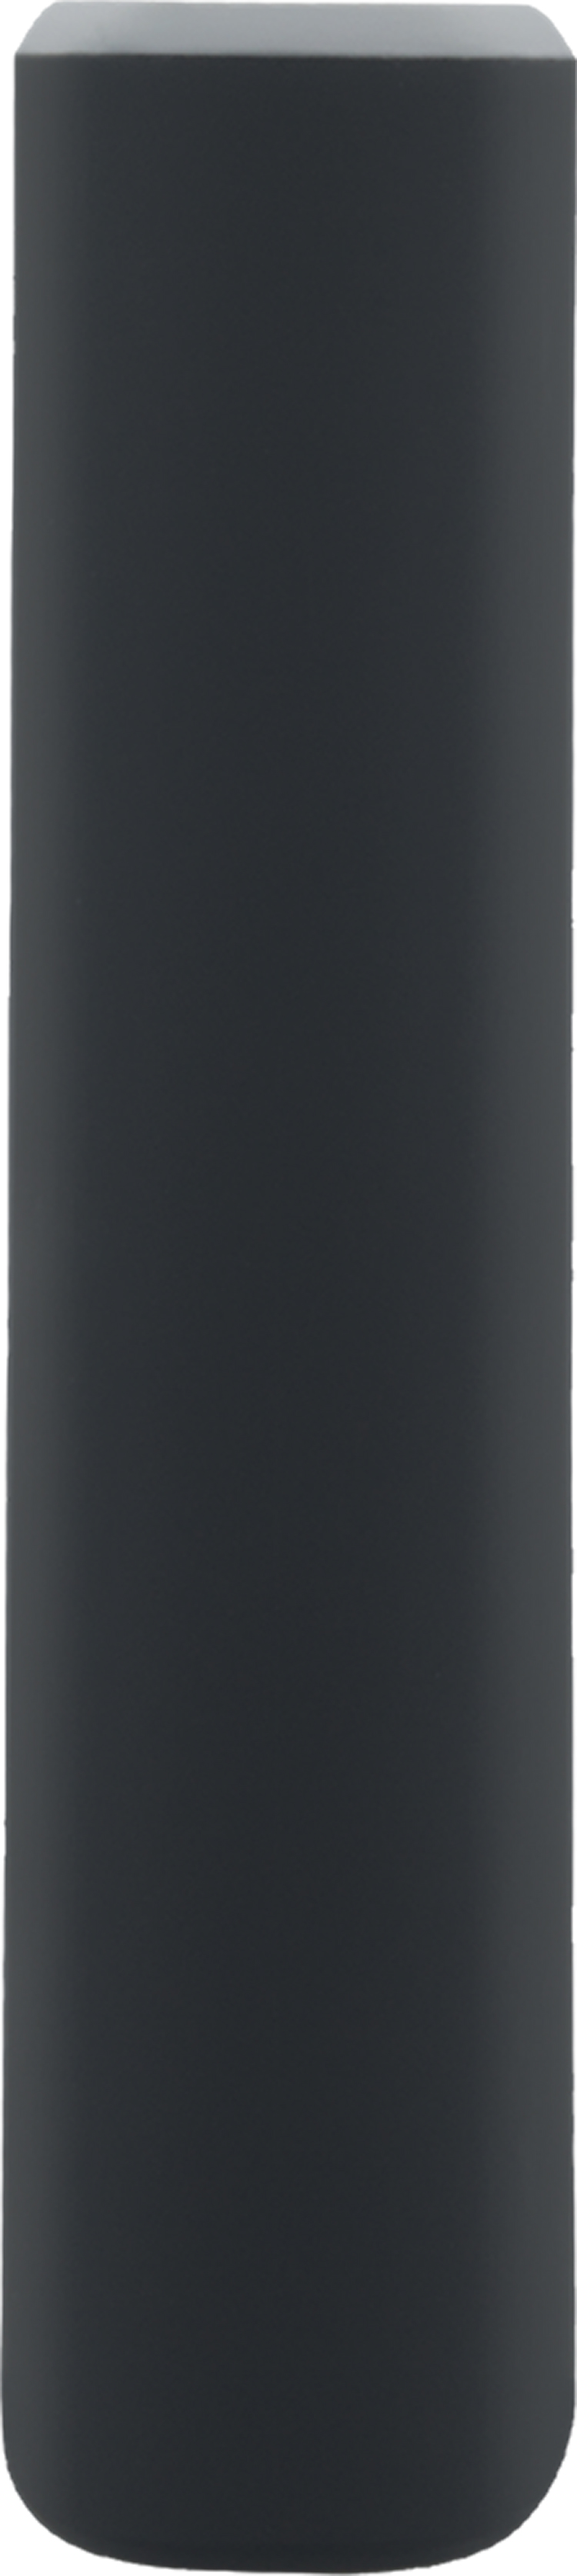 Power bank 7500 mAh (Black) - Image